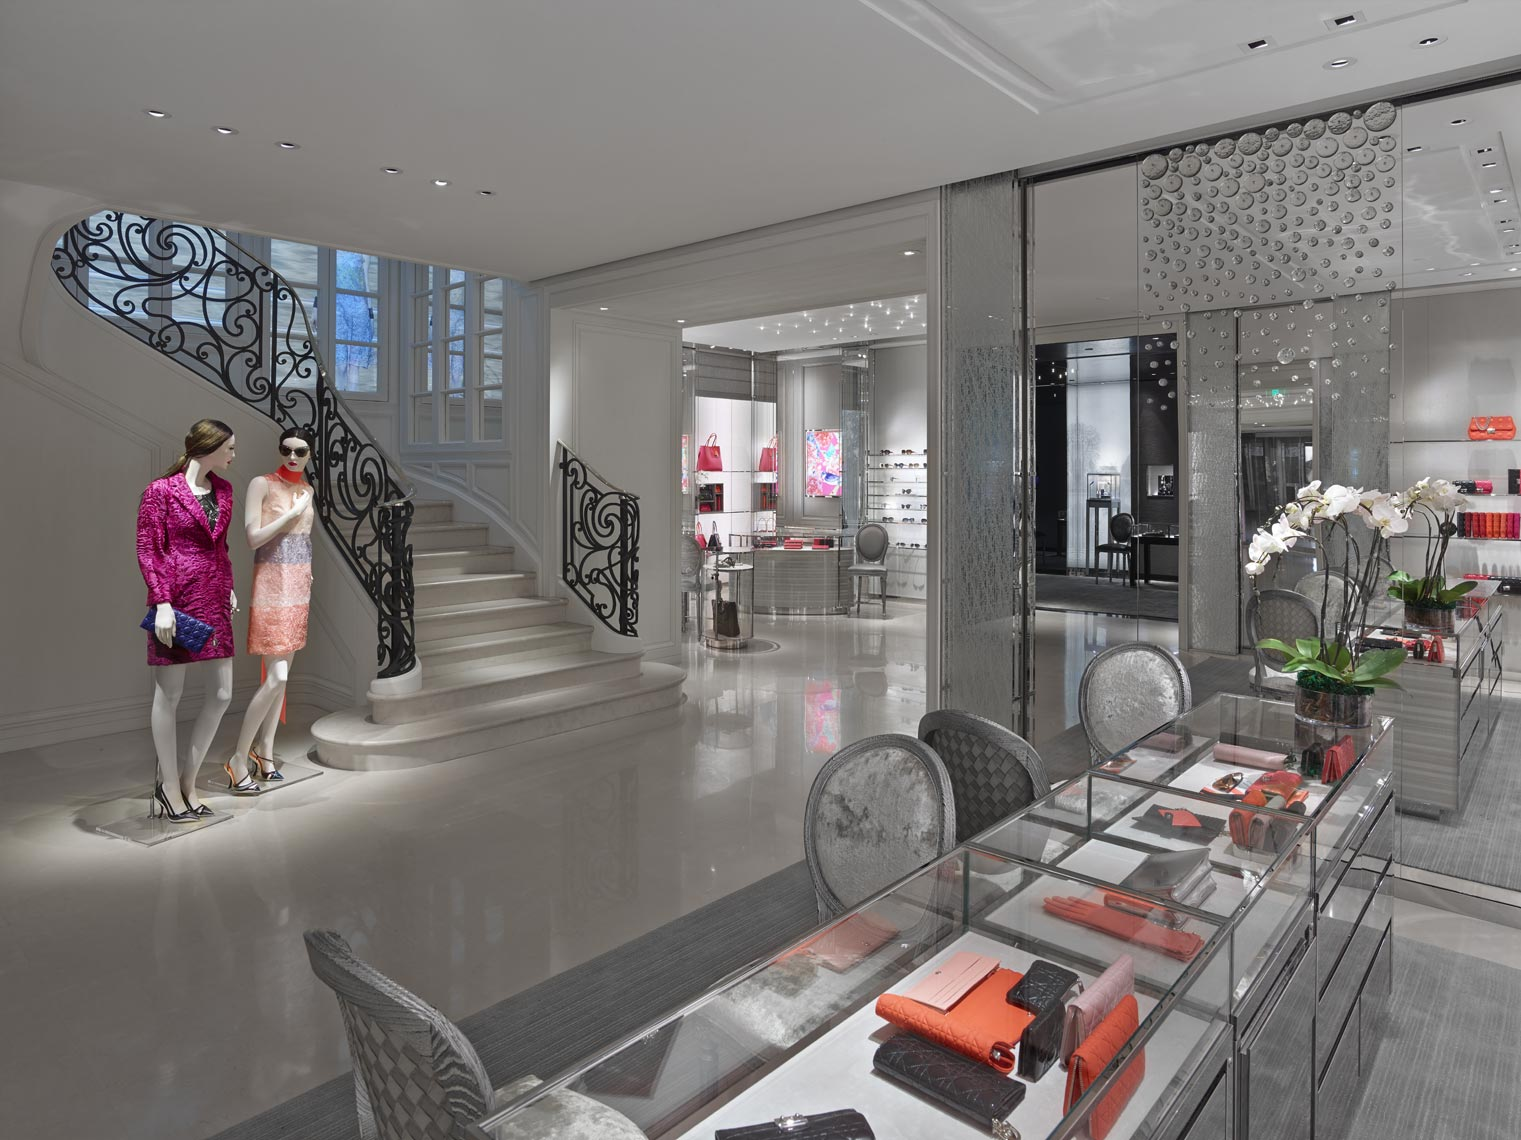 Dior boutique Chengdu